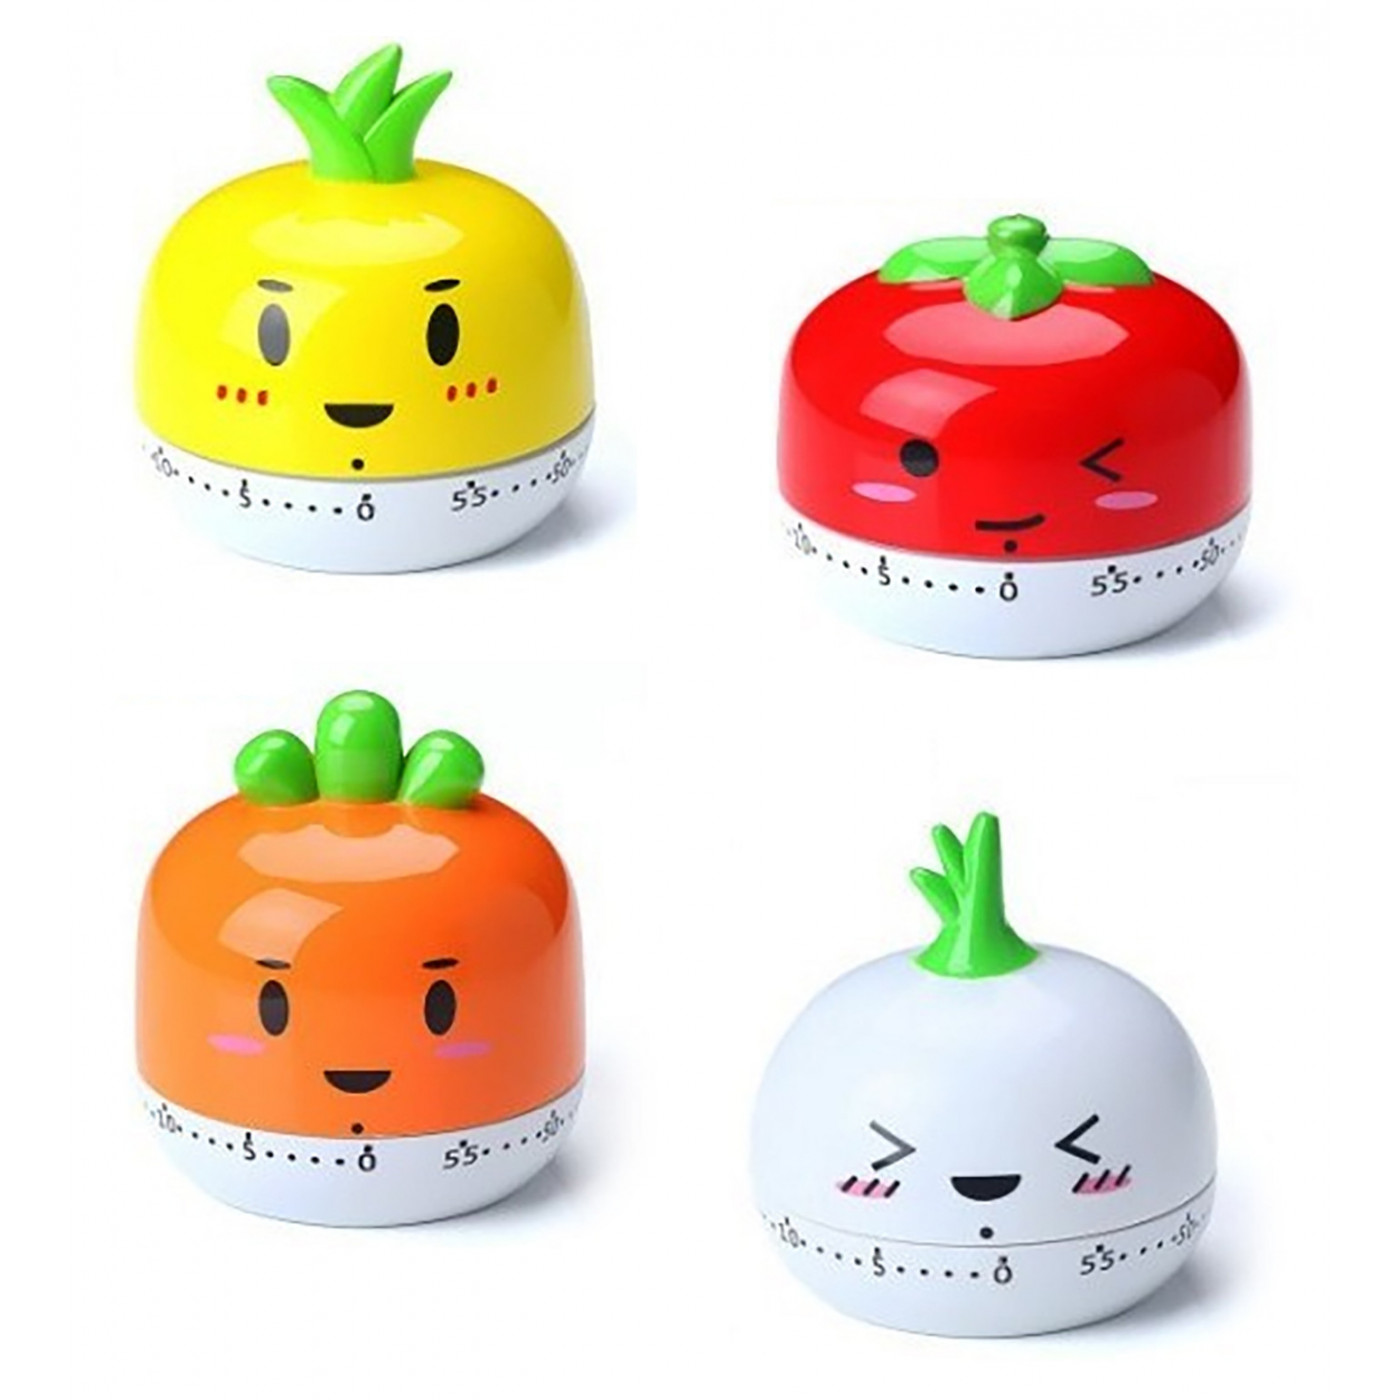 Set of 4 cheerful cooking timers (pineapple, tomato, carrot & garlic)  - 1